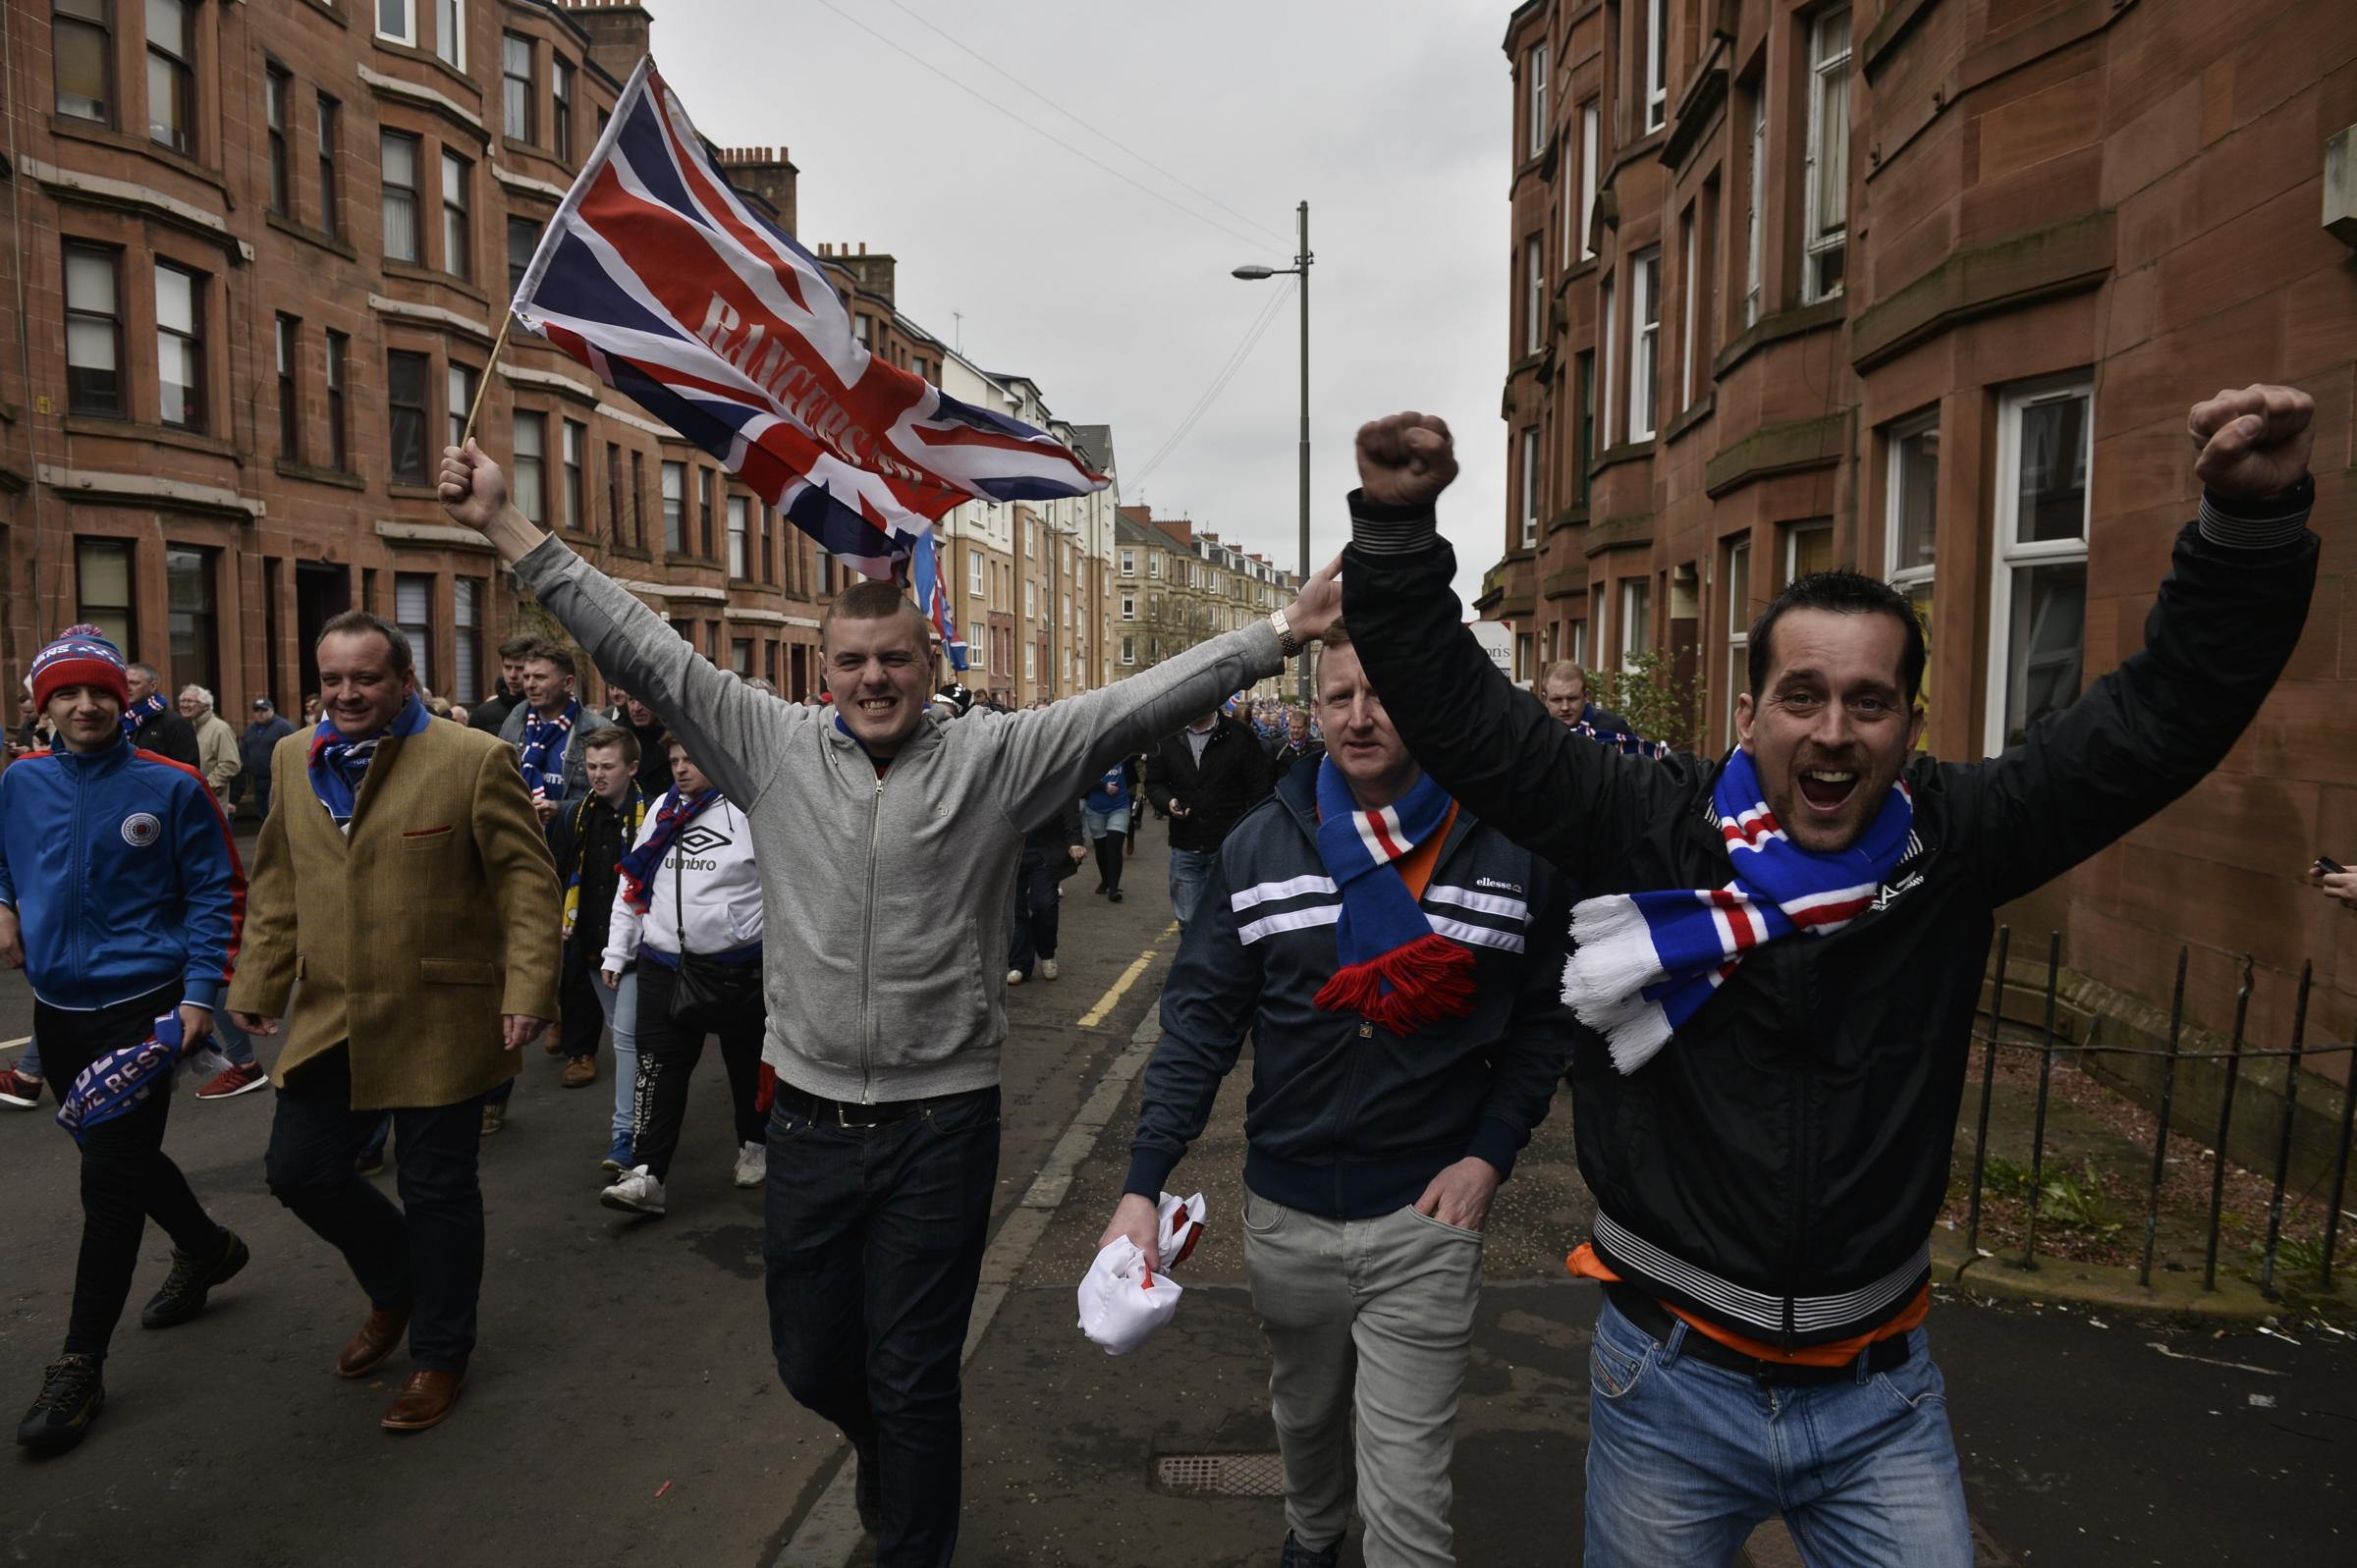 It was the Rangers supporters who had more to sing about after the Old Firm semi-final